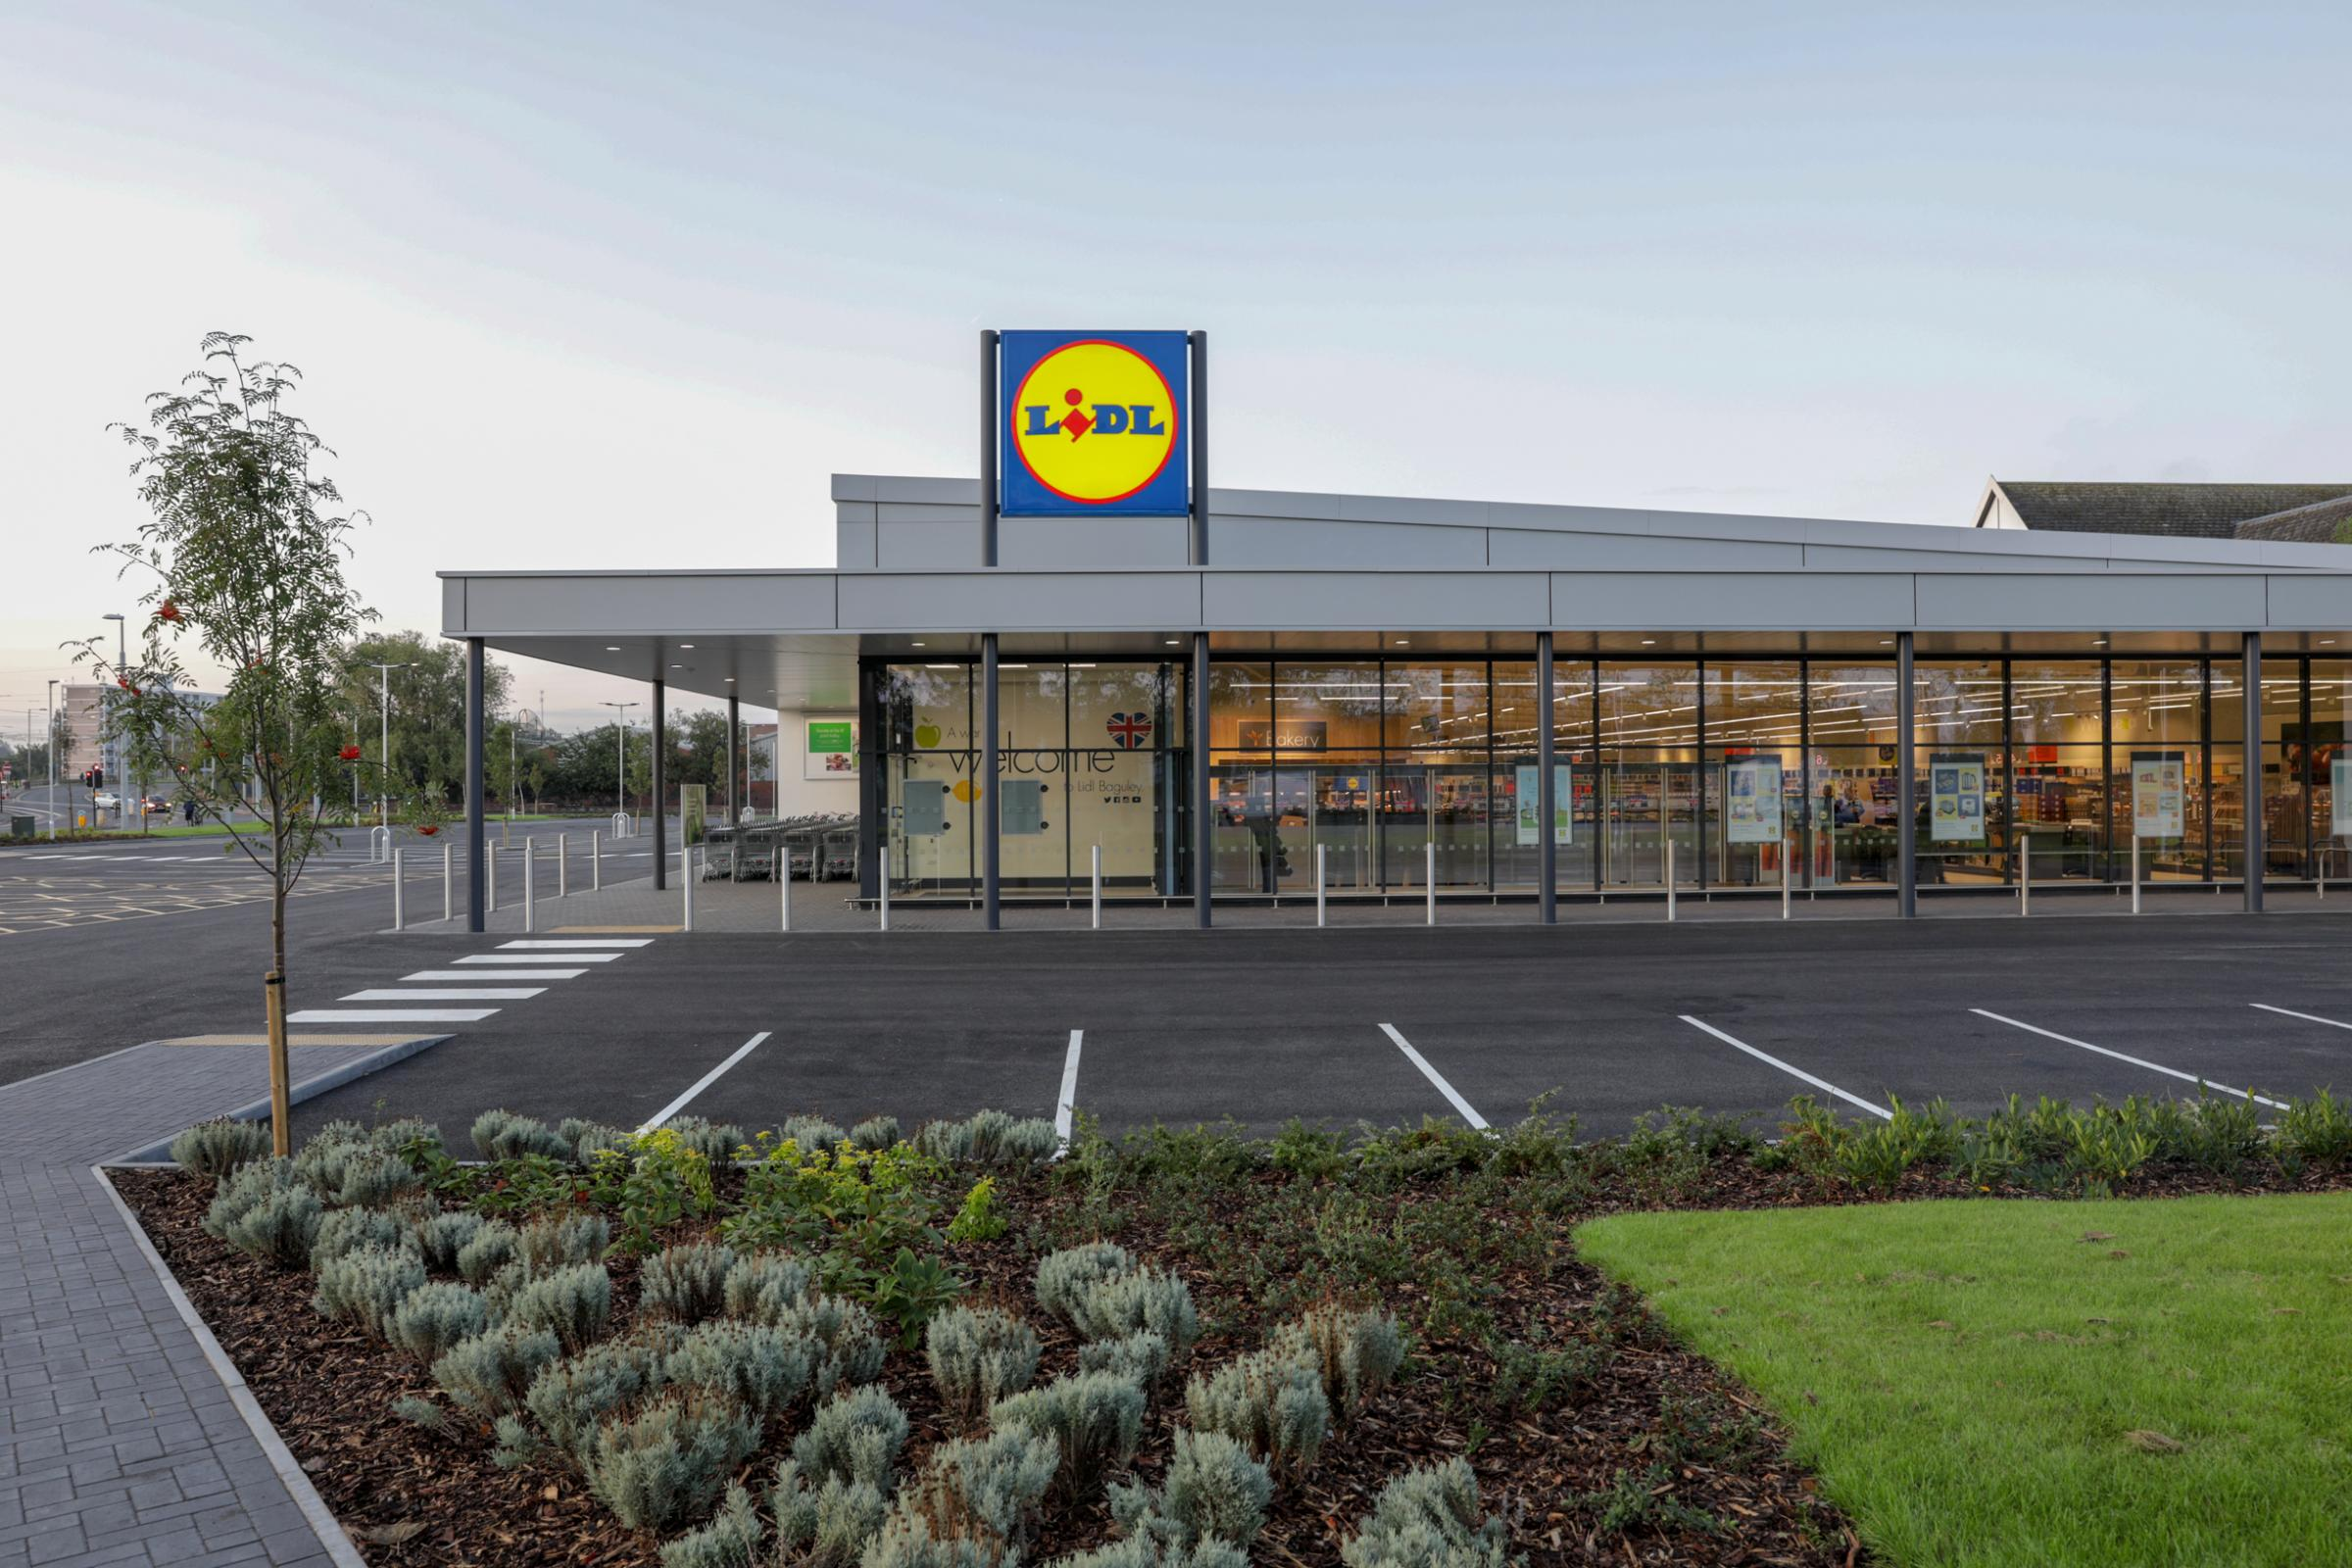 How the new Larkhall store will look when it opens in 2020